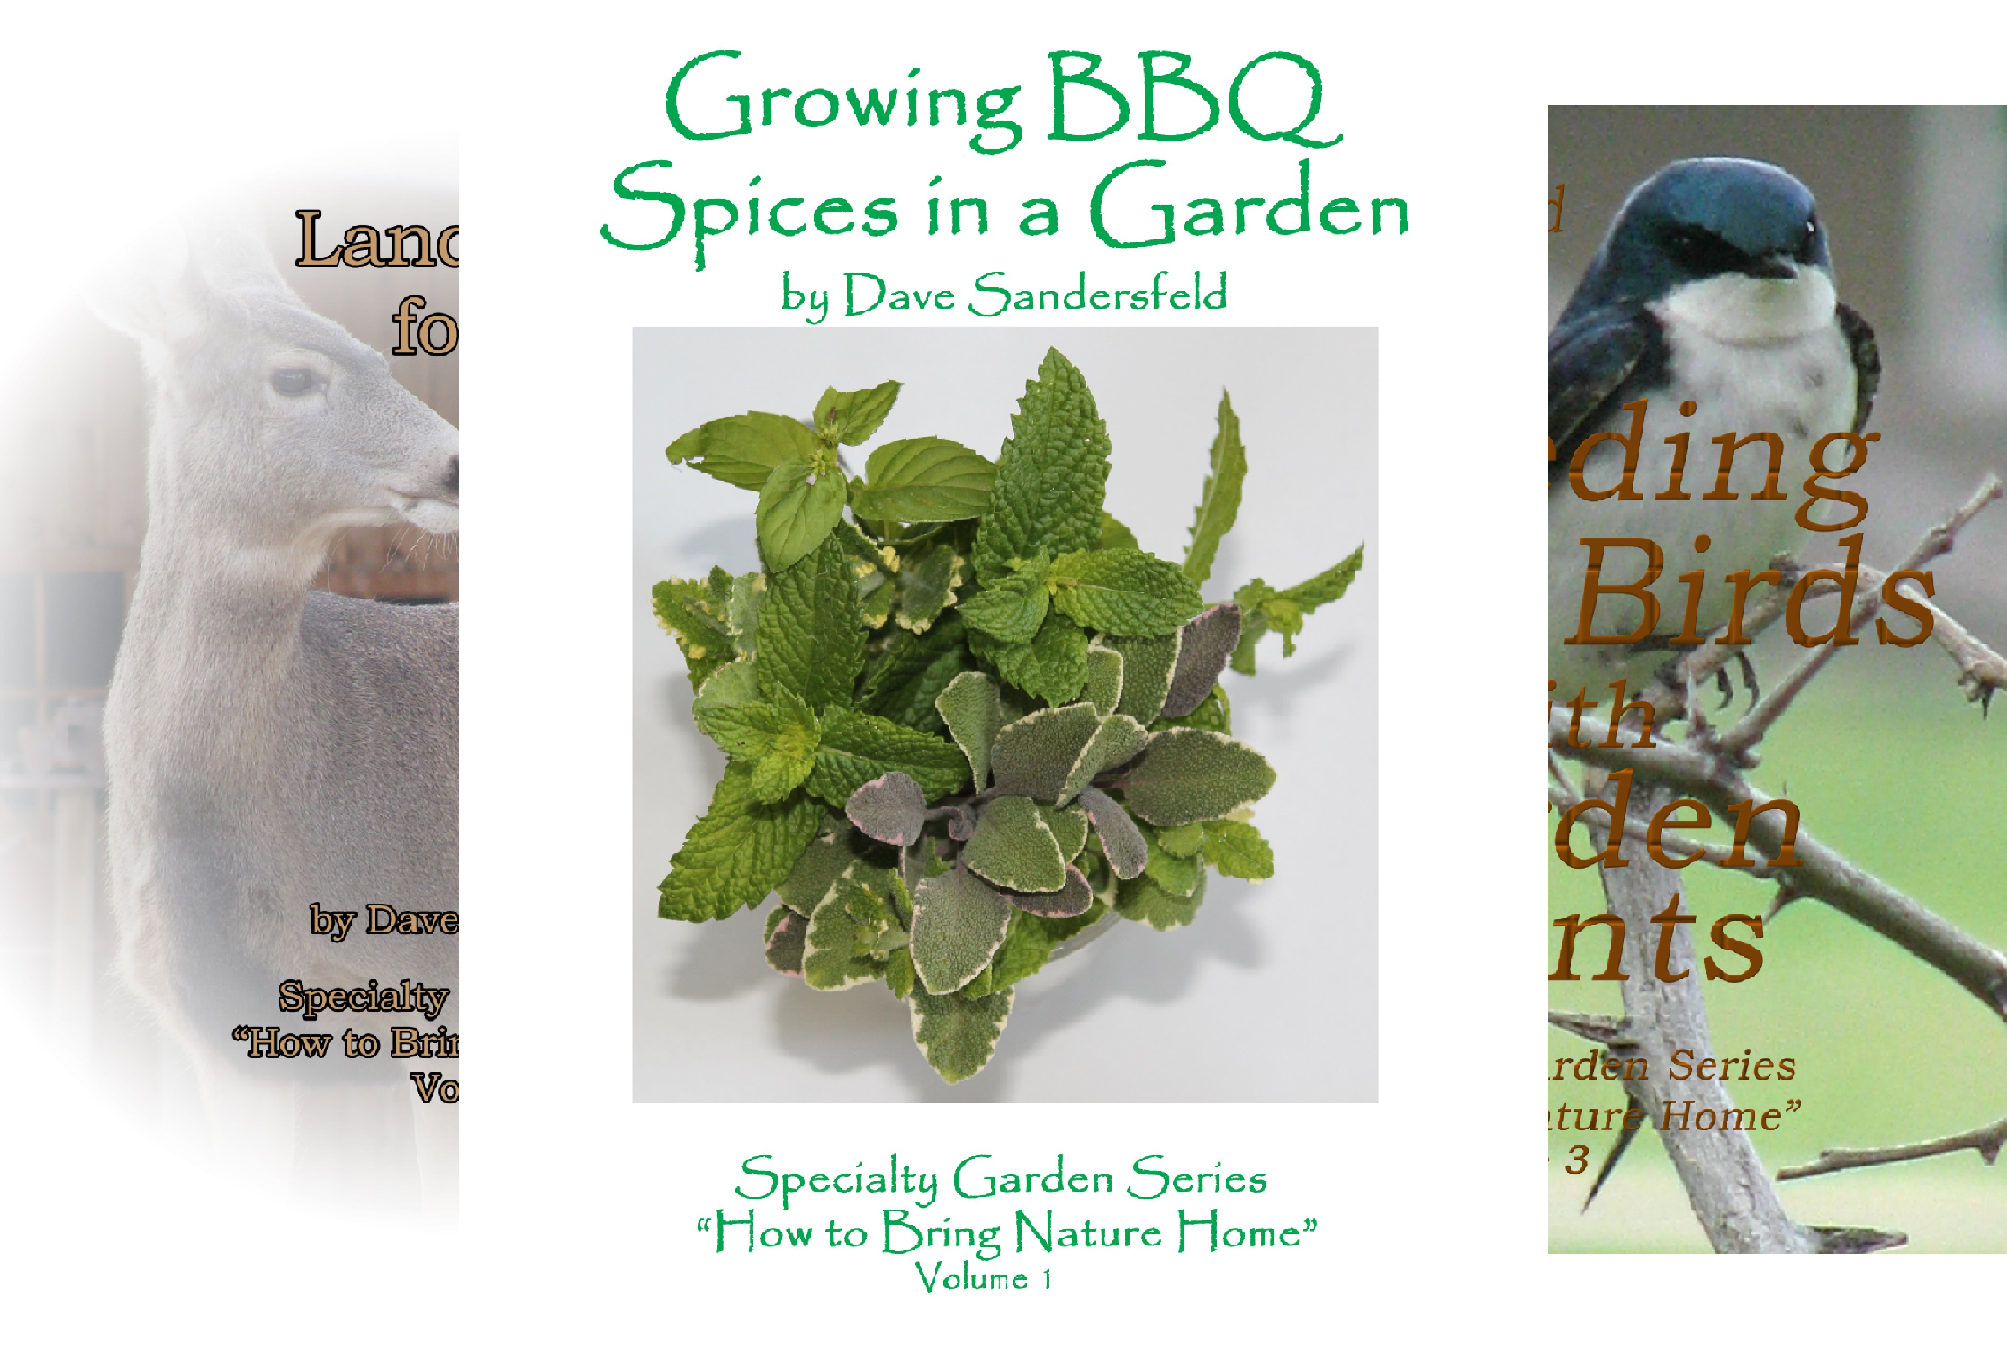 Specialty Garden Series (3 Book Series)